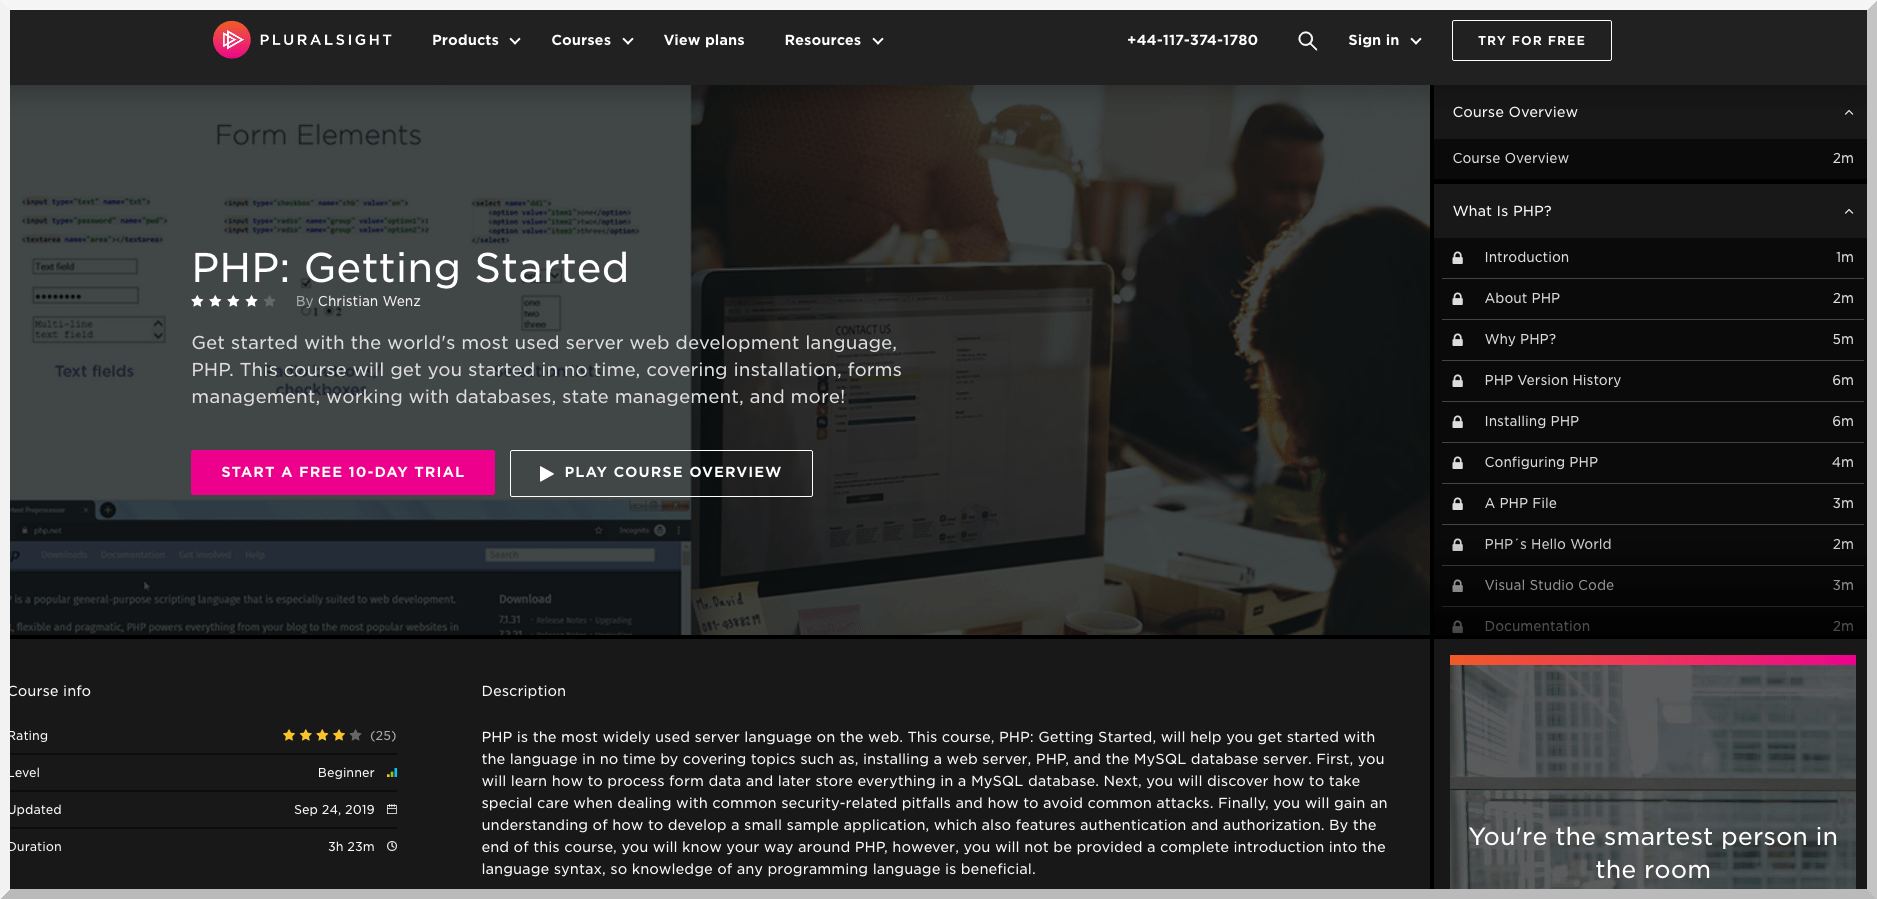 PHP Getting Started – Pluralsight